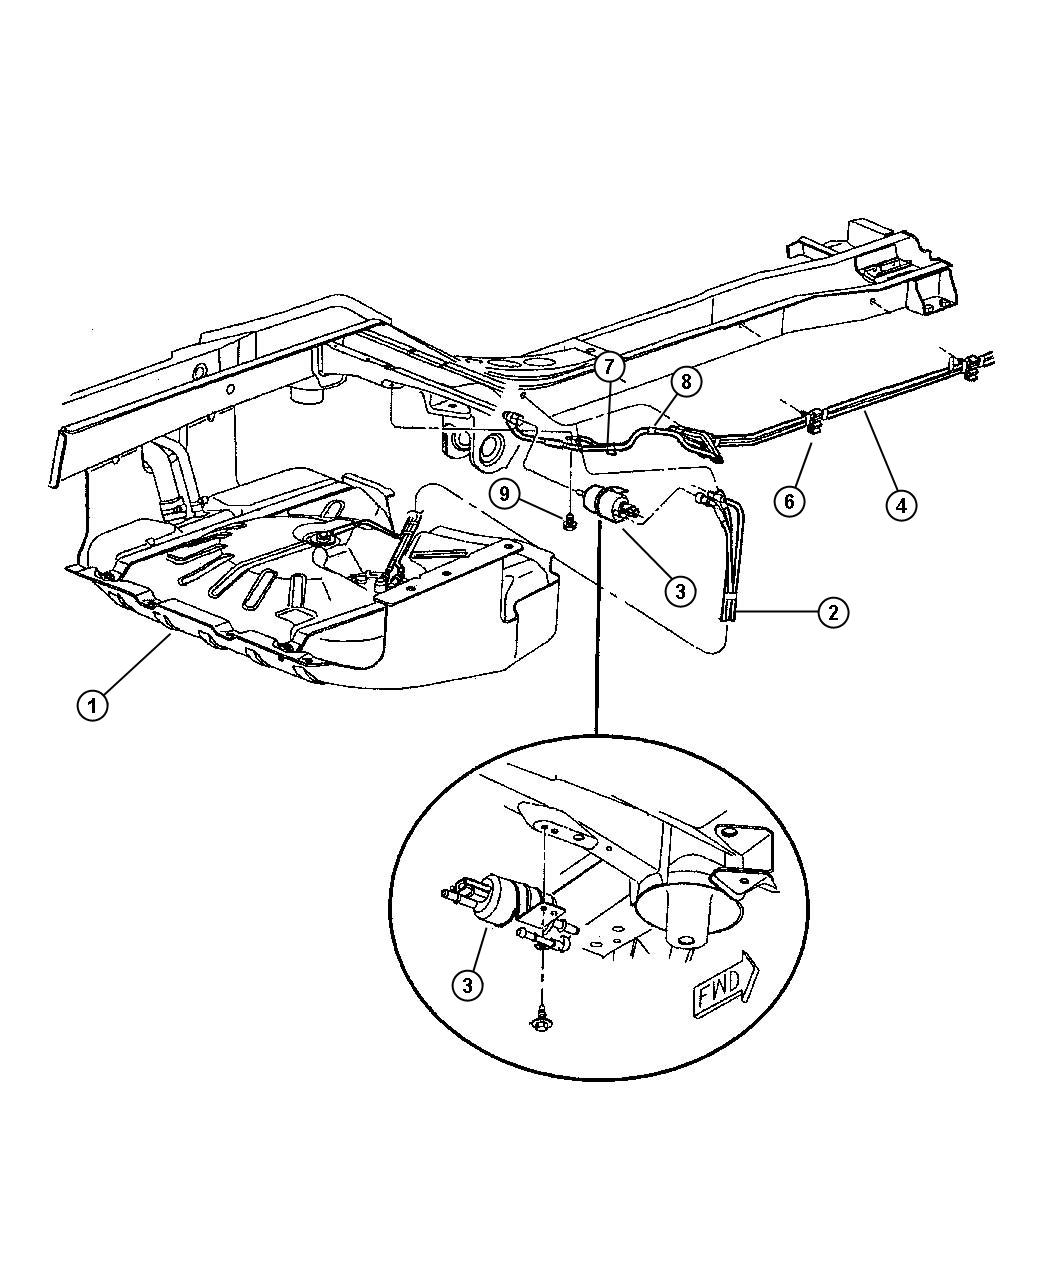 1999 jeep grand cherokee used for  filter and regulator